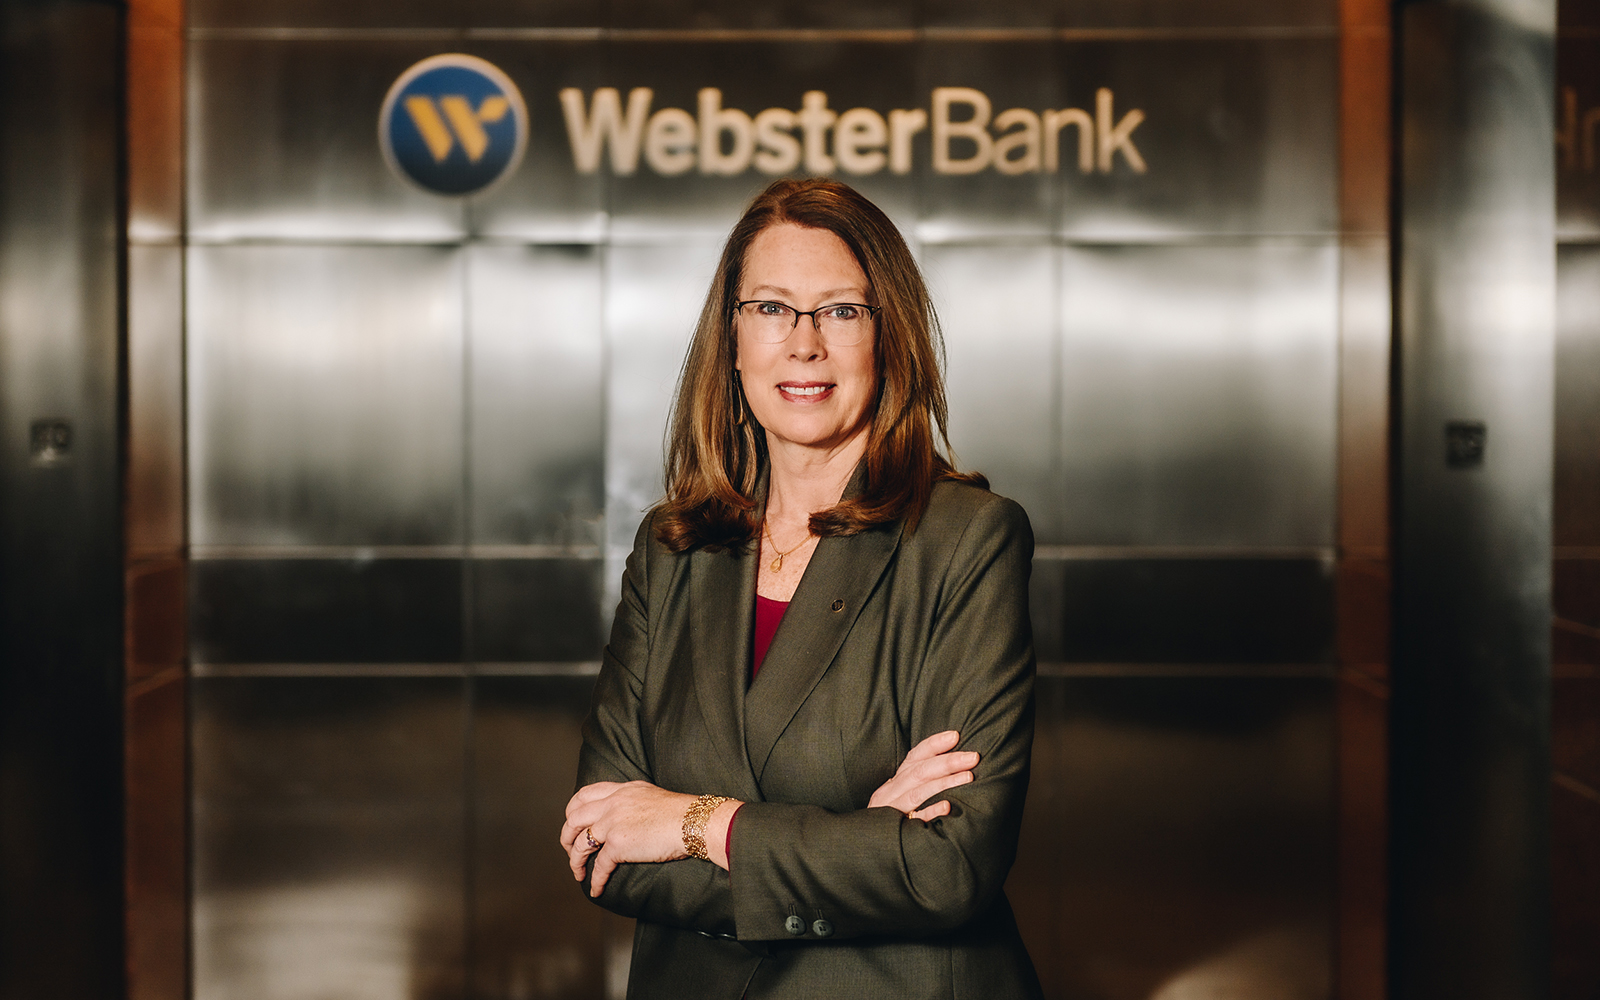 Kathy Luria '91, SVP, community affairs and director of philanthropy at Webster Bank. (Nathan Oldham / UConn School of Business)